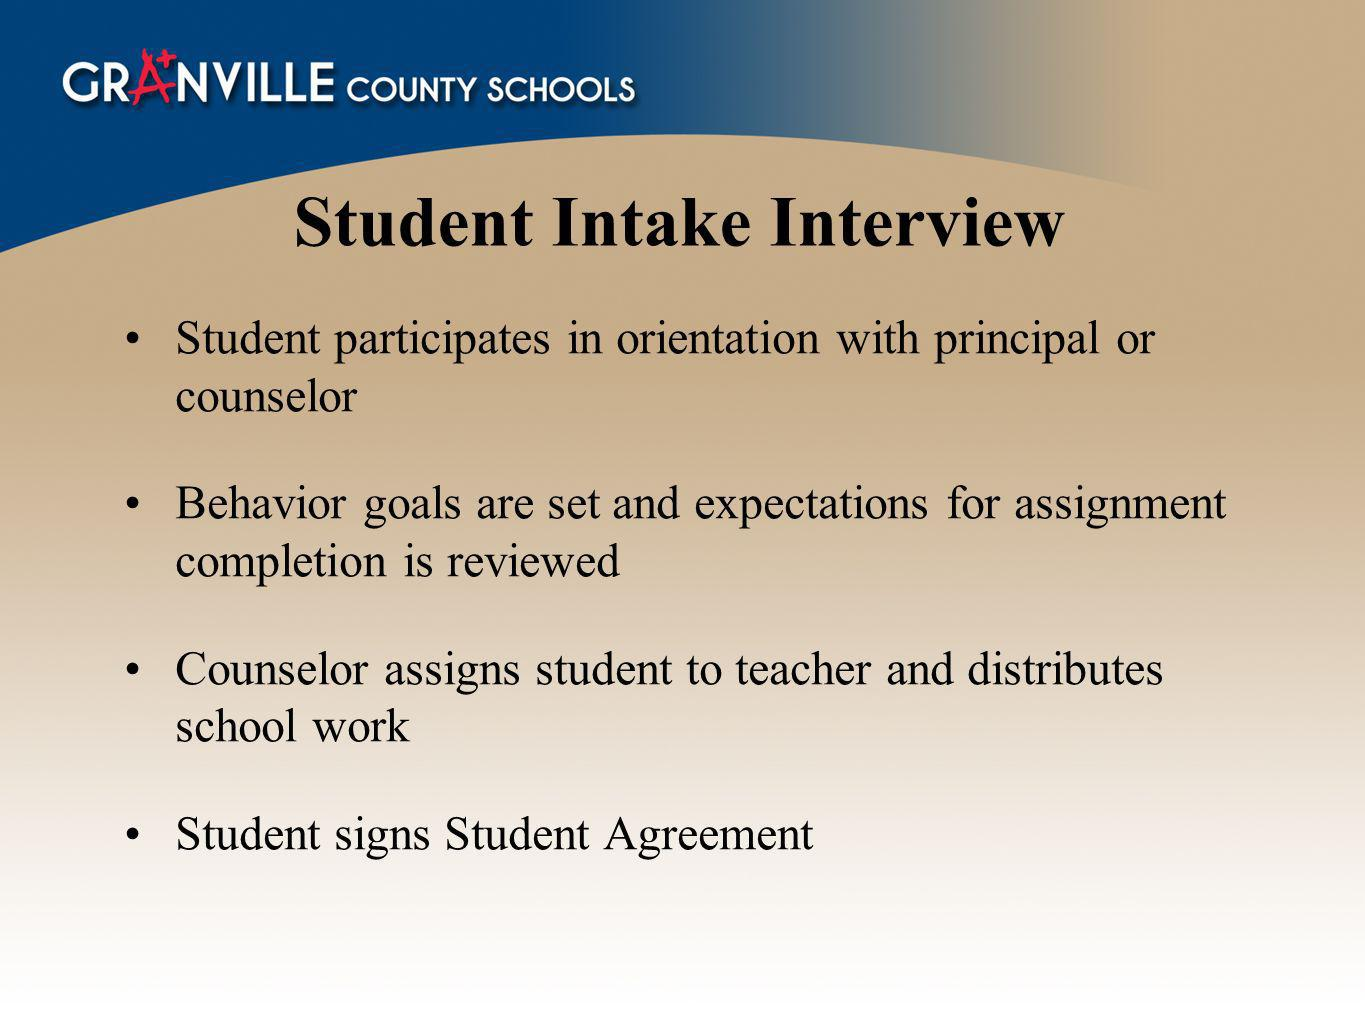 Student Intake Interview Student participates in orientation with principal or counselor Behavior goals are set and expectations for assignment completion is reviewed Counselor assigns student to teacher and distributes school work Student signs Student Agreement